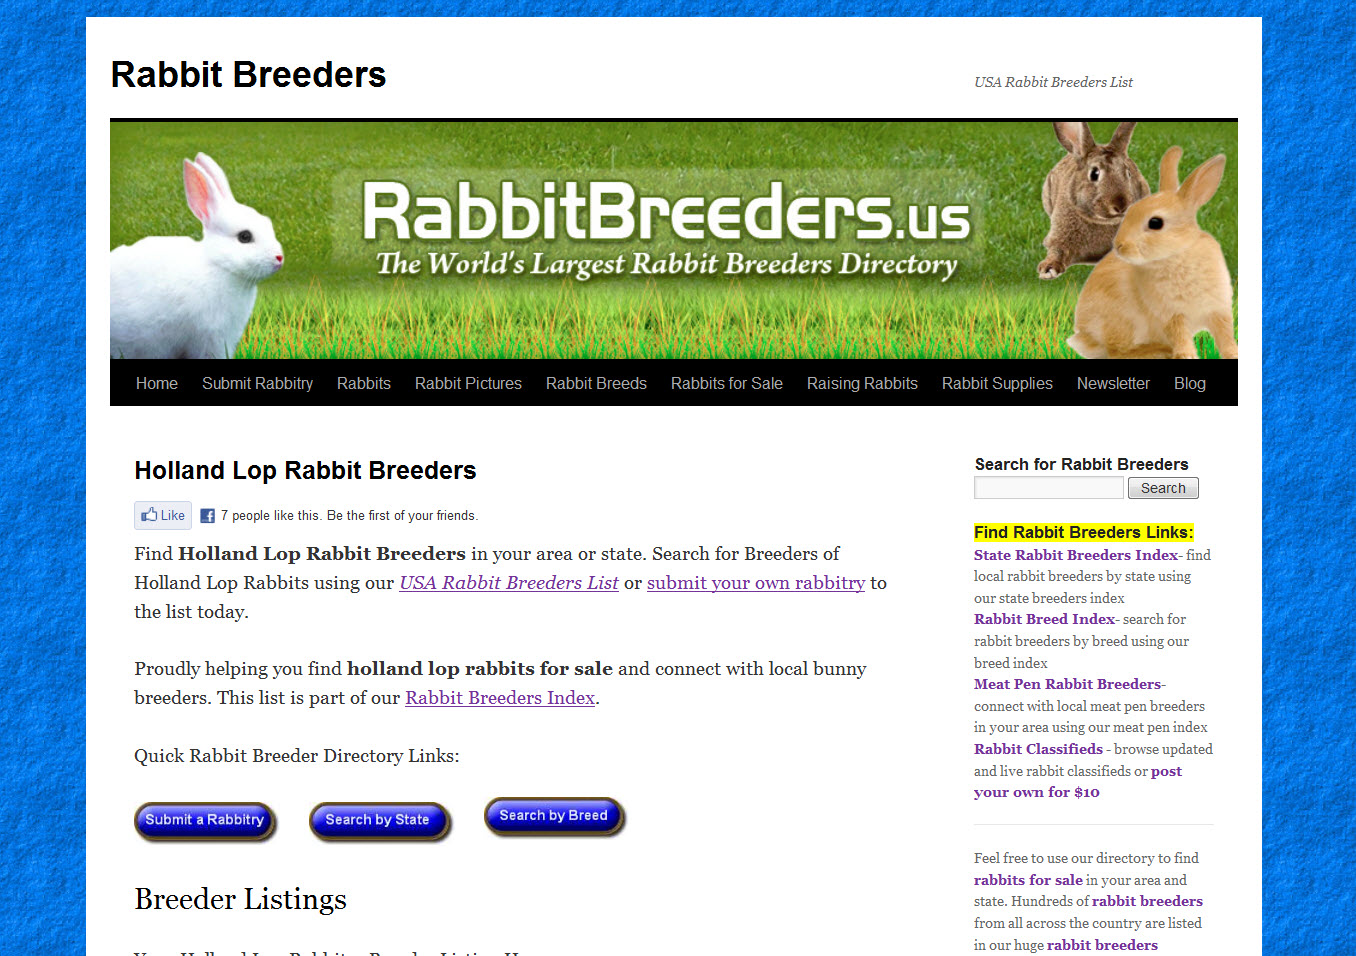 Holland Lop Rabbit Breeders